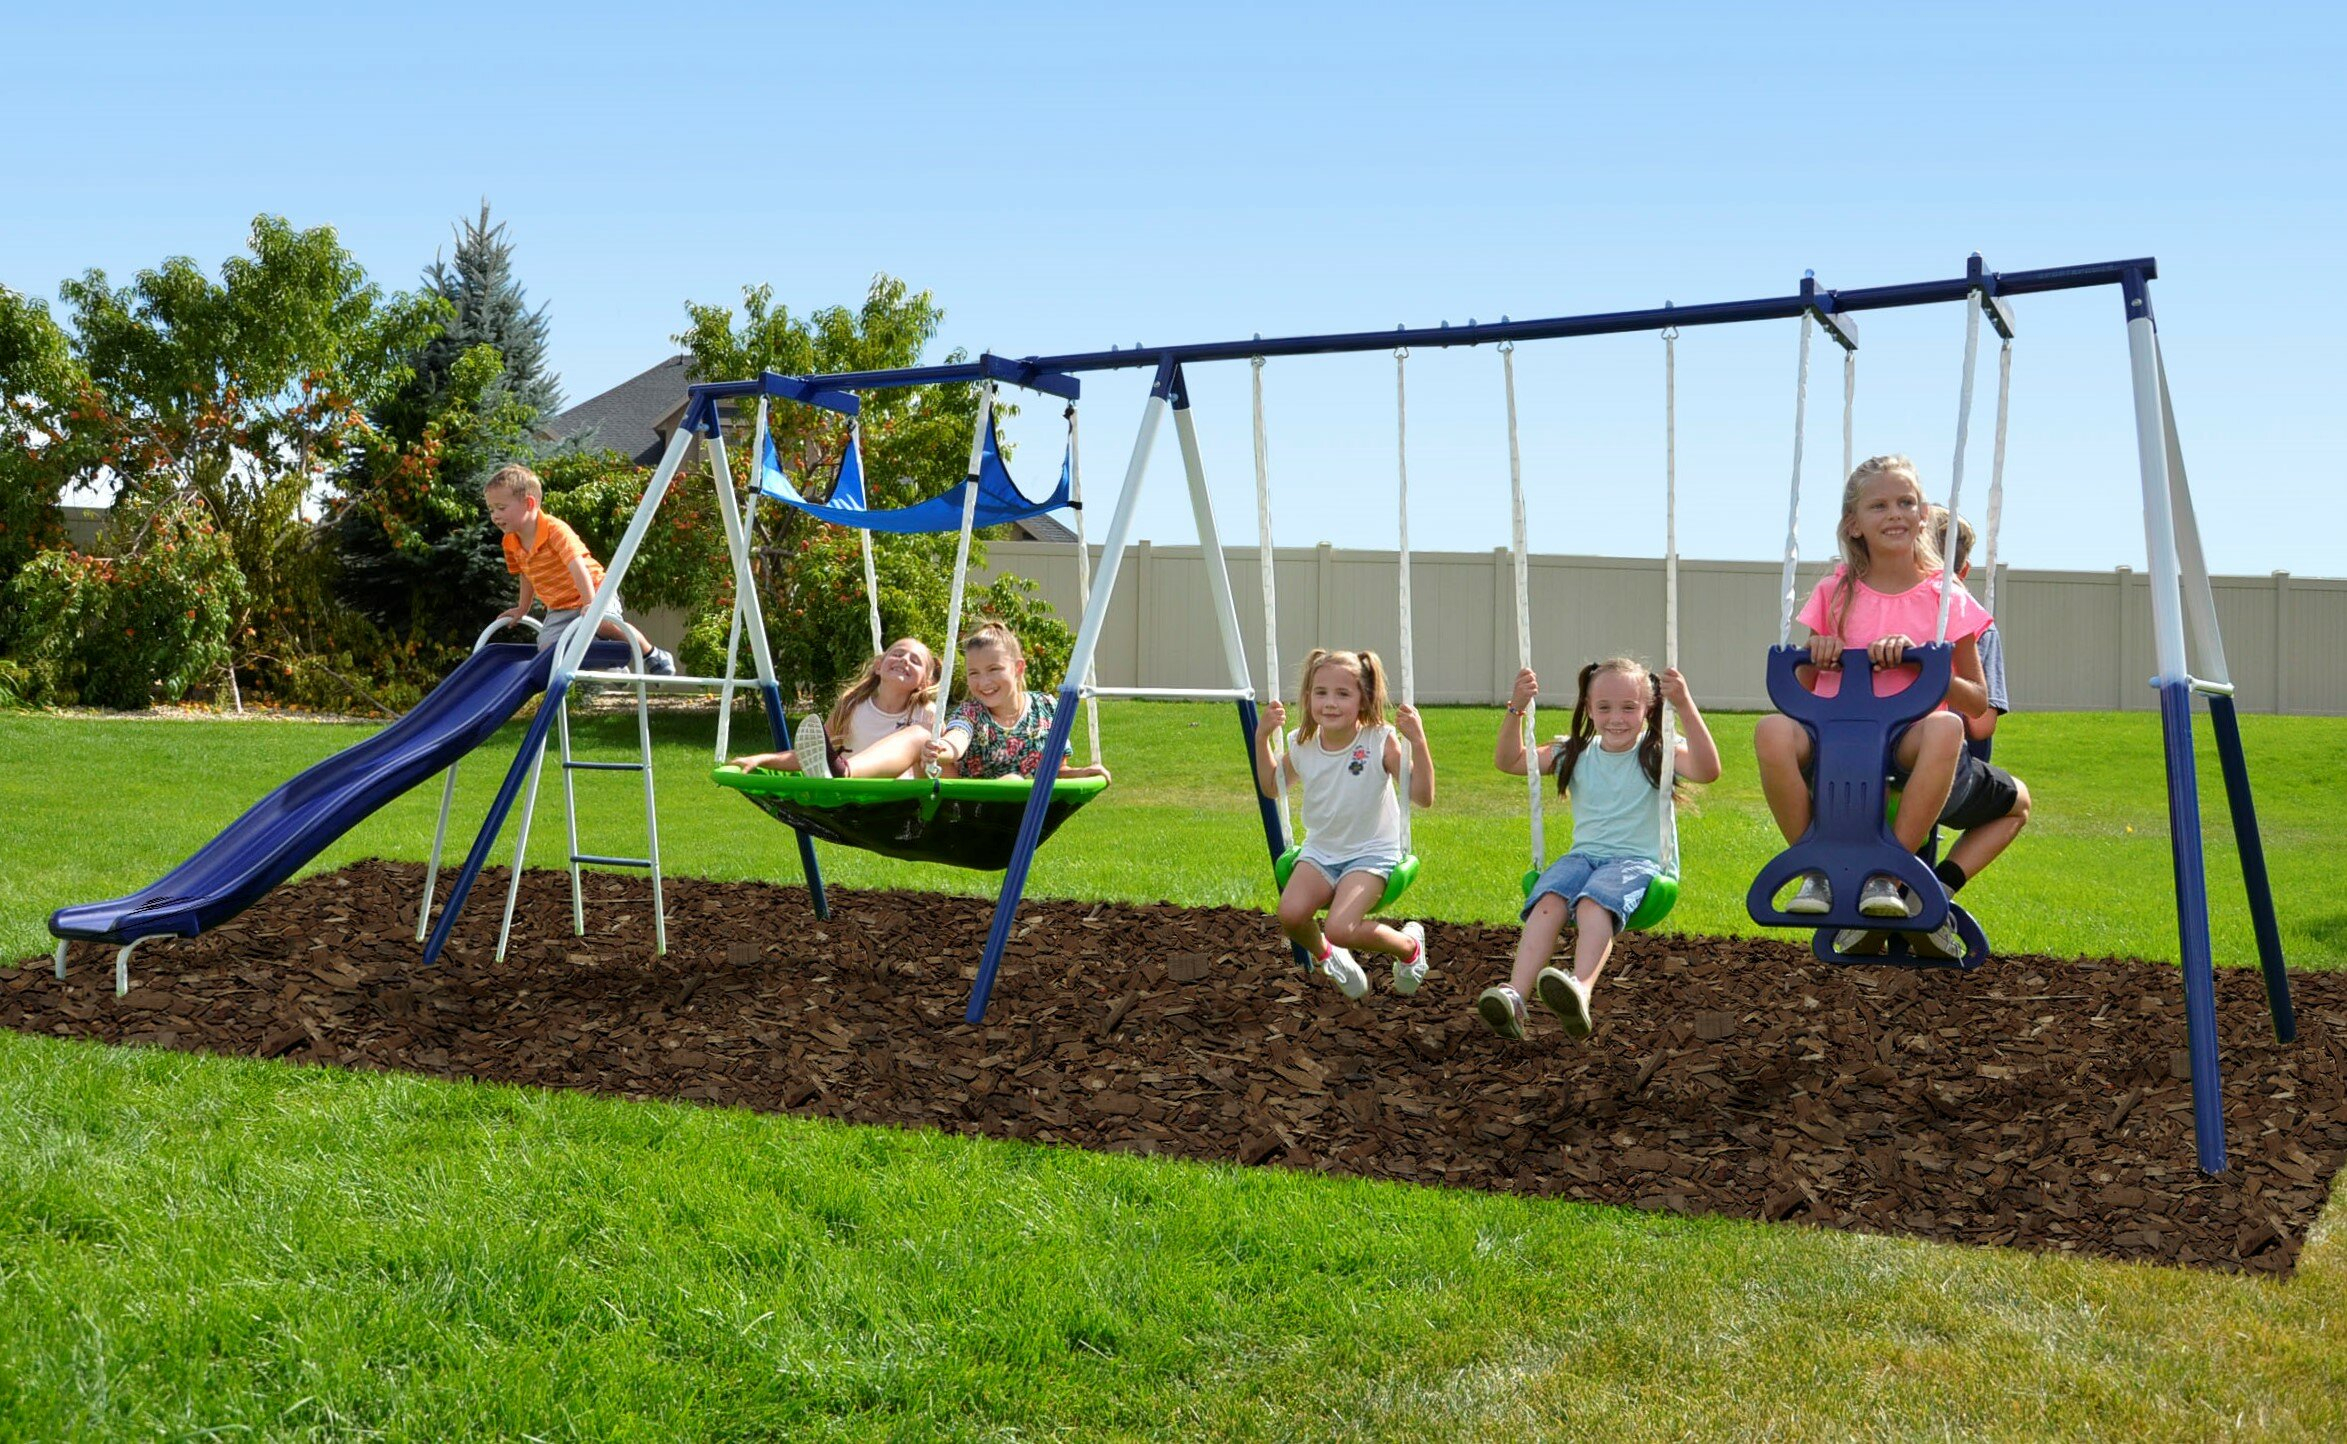 Swings Glider | Wayfair In Dual Rider Glider Swings With Soft Touch Rope (View 14 of 25)